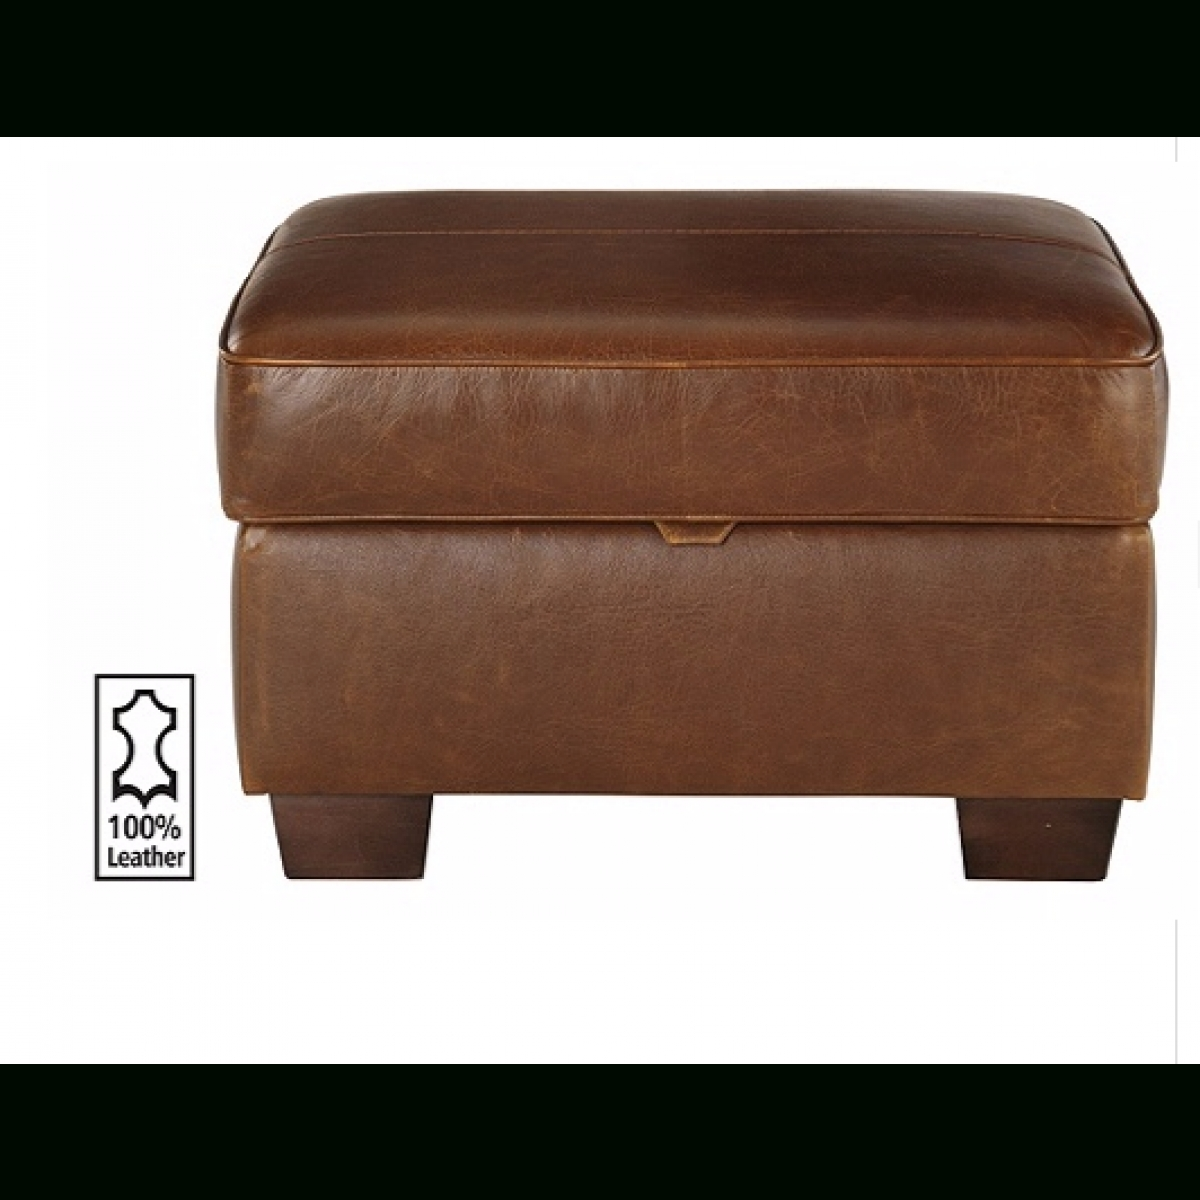 Heart Of House Salisbury Leather Footstool - Tan. - Furnico Village throughout Leather Footstools (Image 13 of 30)